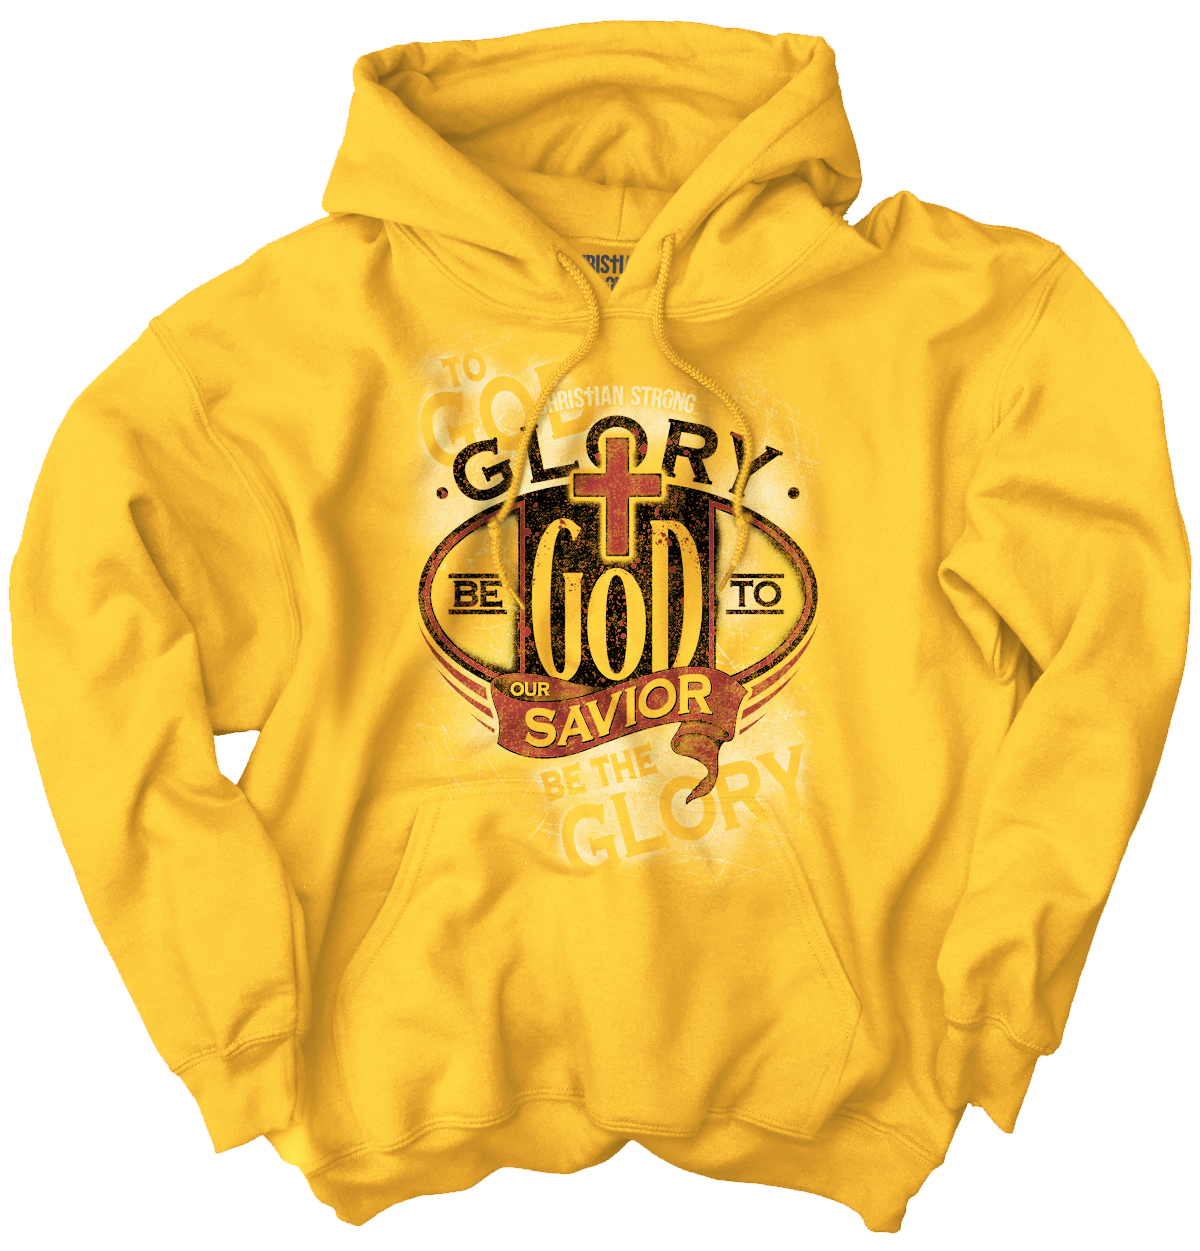 Christian Hooded Sweatshirt Glory Be To God Savior Jesus Christ Faith Religious by Christian Strong